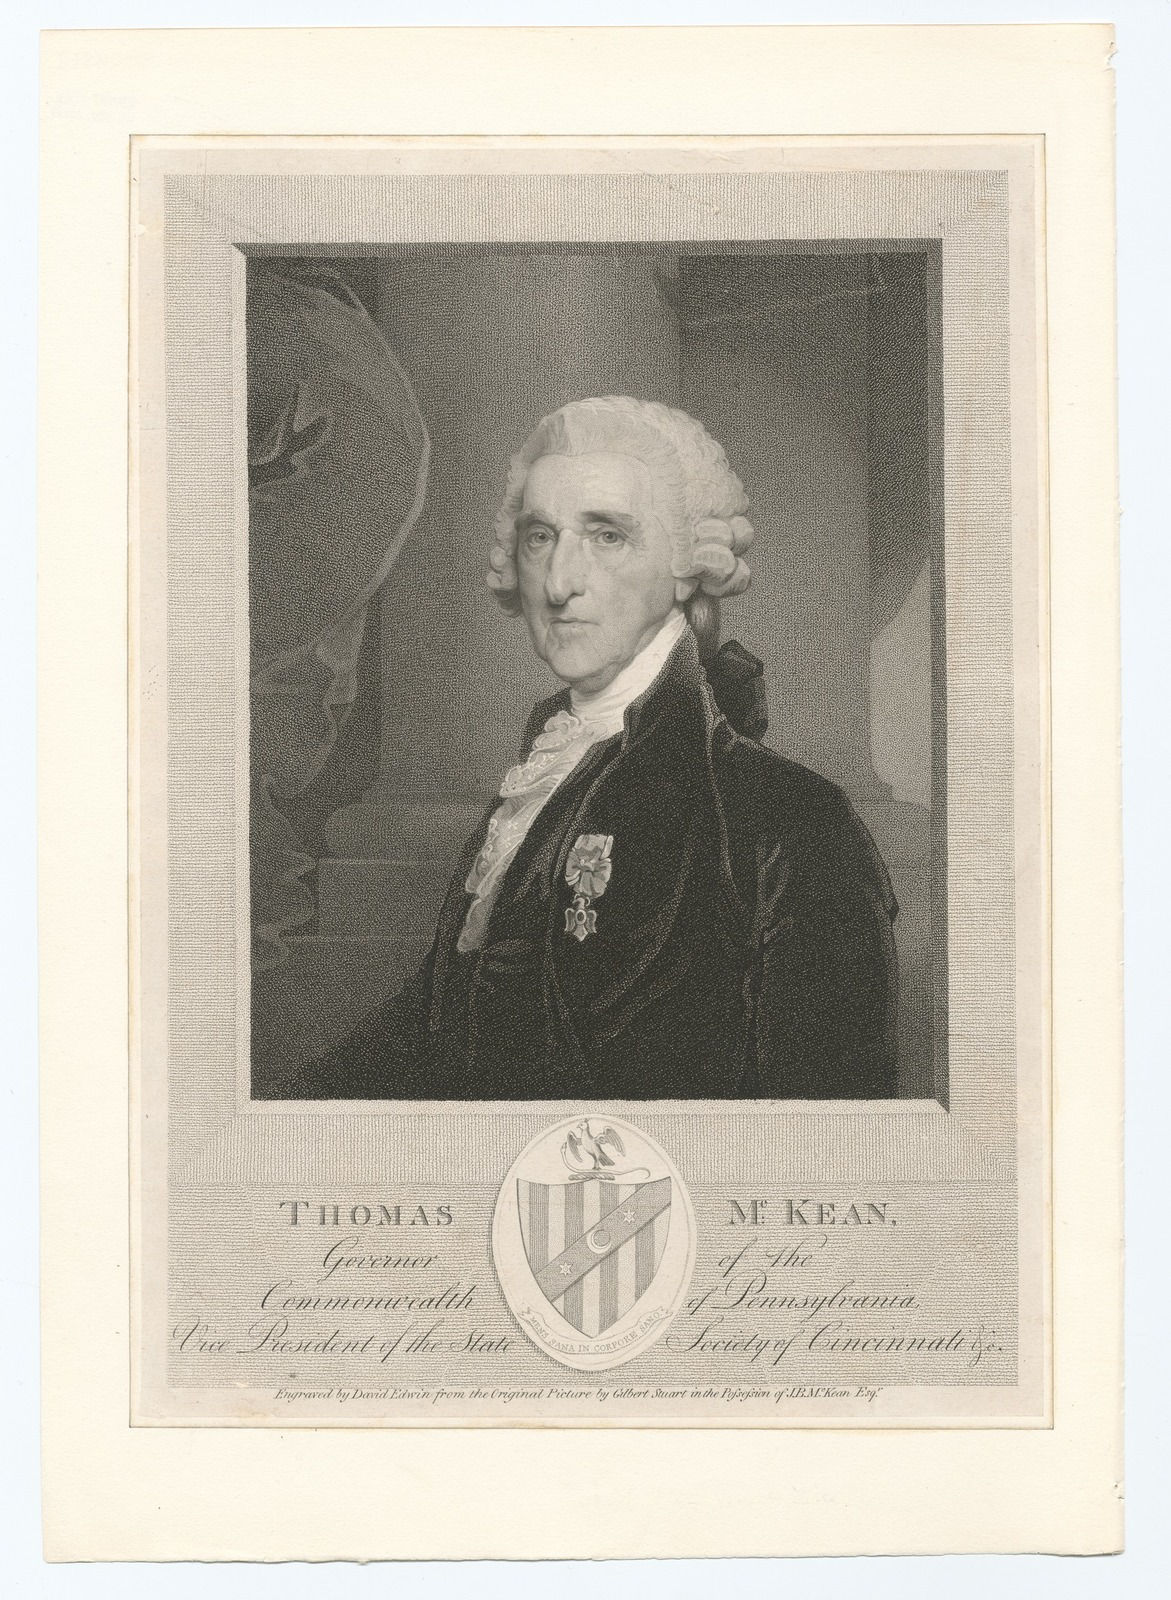 Thomas McKean, Governer of the Commonwealth of Pennsylvania, vice president of the State Society of Cincinnati etc.